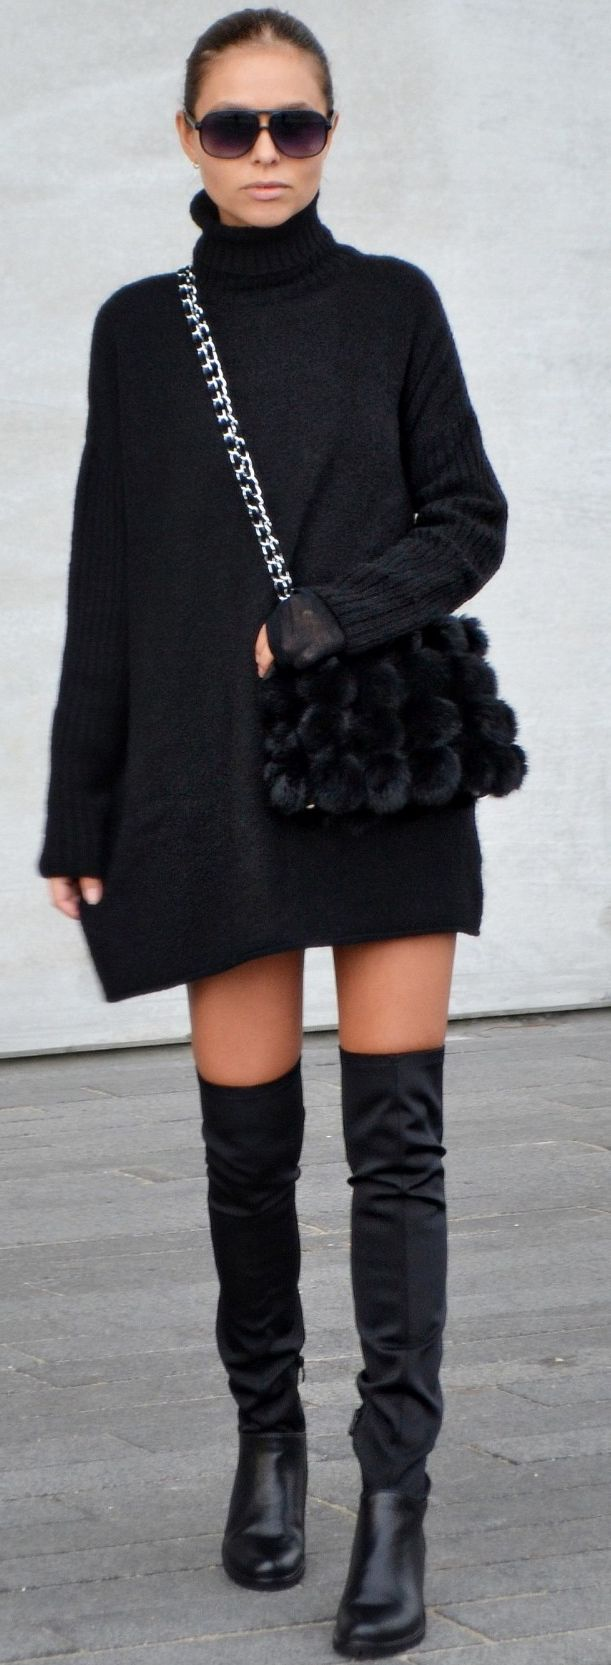 Maria Kragmann All Everything Black And Simple Fall Street Style Inspo: